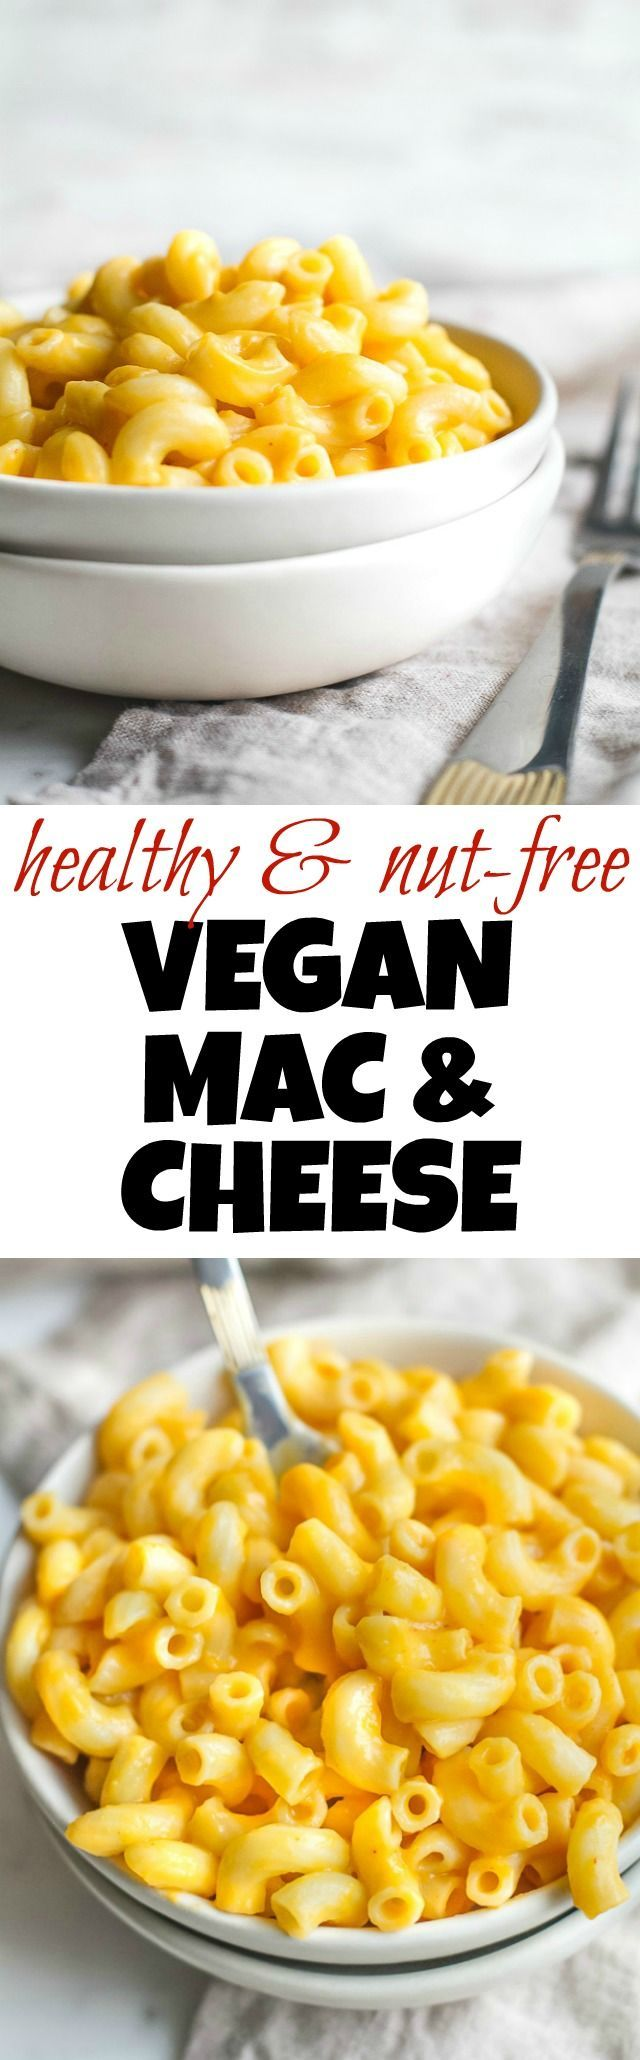 Vegan Mac & Cheese A vegan mac & cheese that's smooth, creamy, nut-free, and made with simple healthy ingredients! The versatile cheesy sauce tastes and feels so authentic that it's guaranteed to be loved by vegans and non-vegans alike. Suitable for those following dairy-free, nut-free, gluten-free, vegan, and paleo diets. |